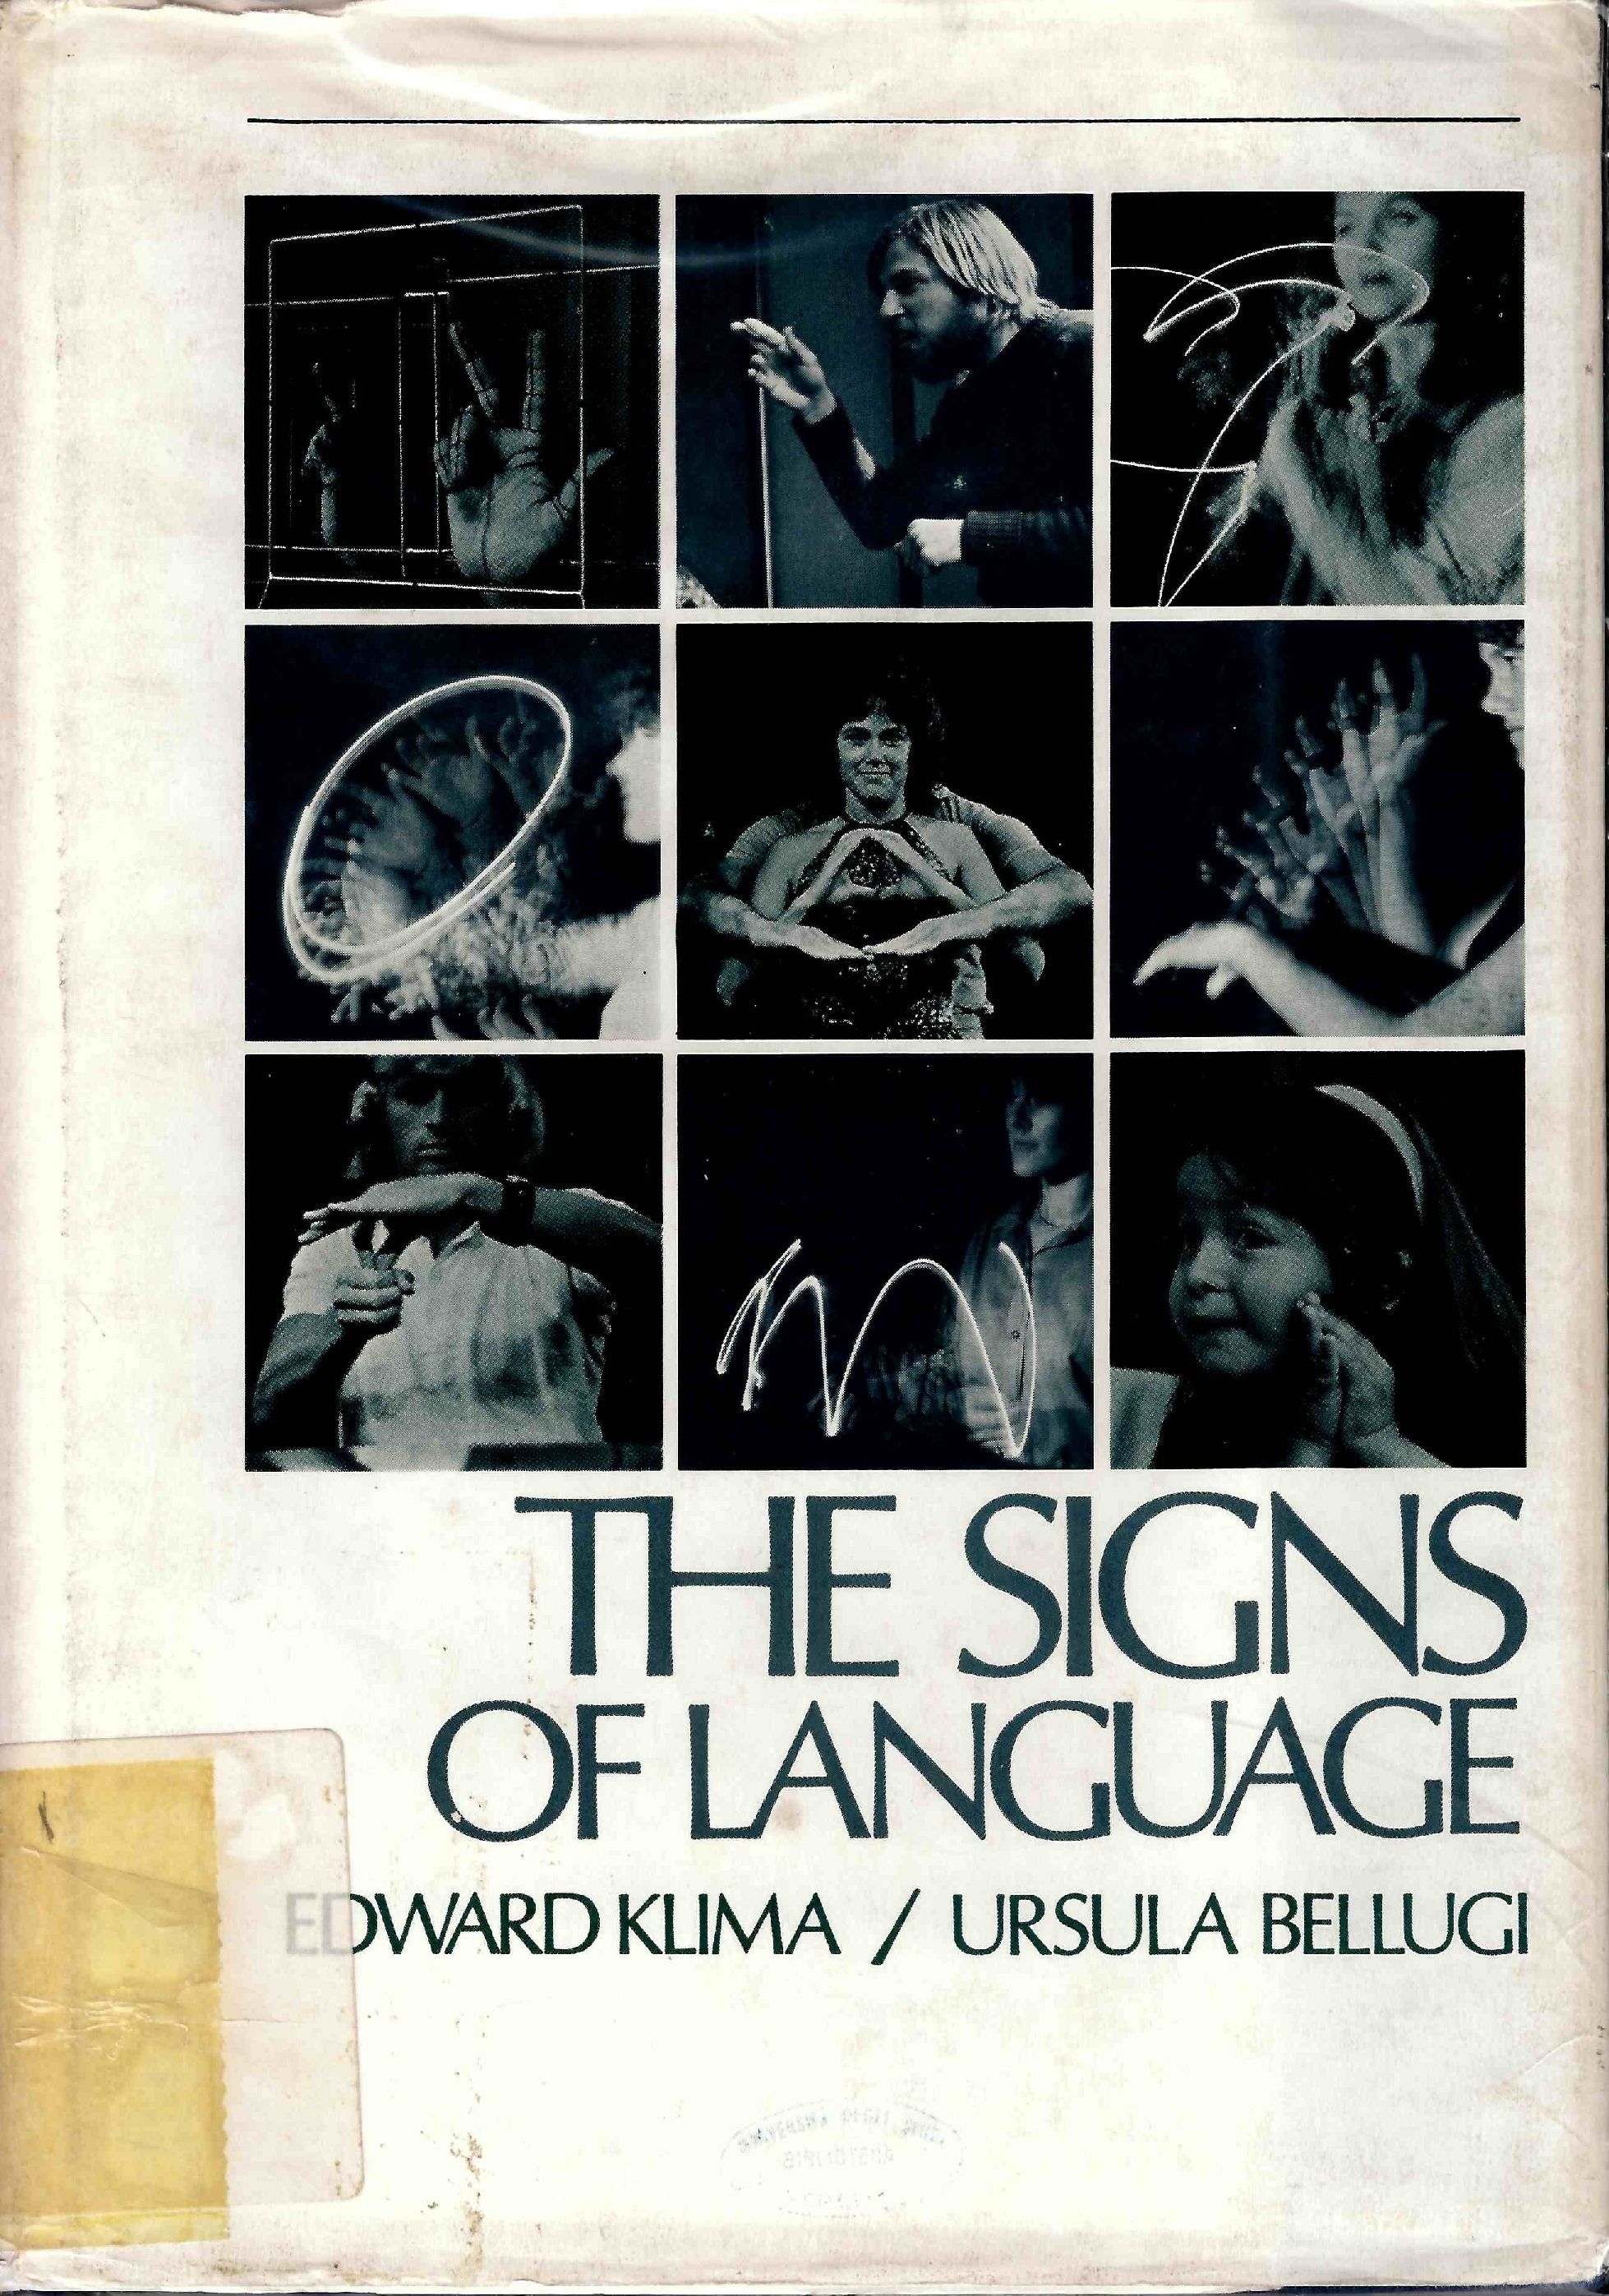 The signs of language